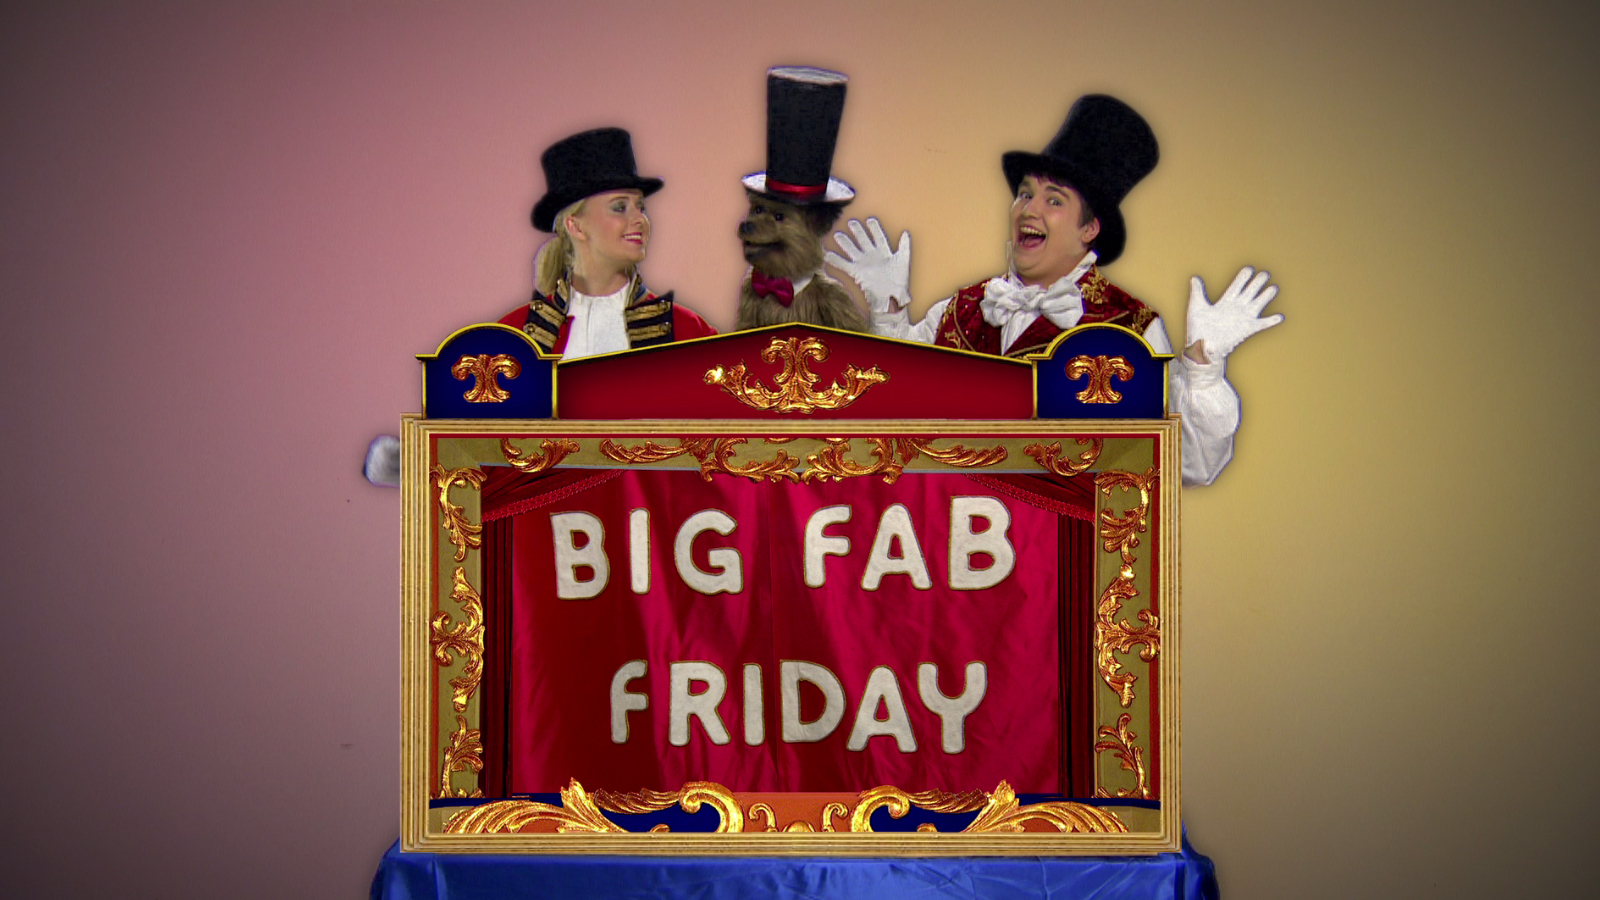 Katie, Chris and Hacker in the Big Fab Fridays song